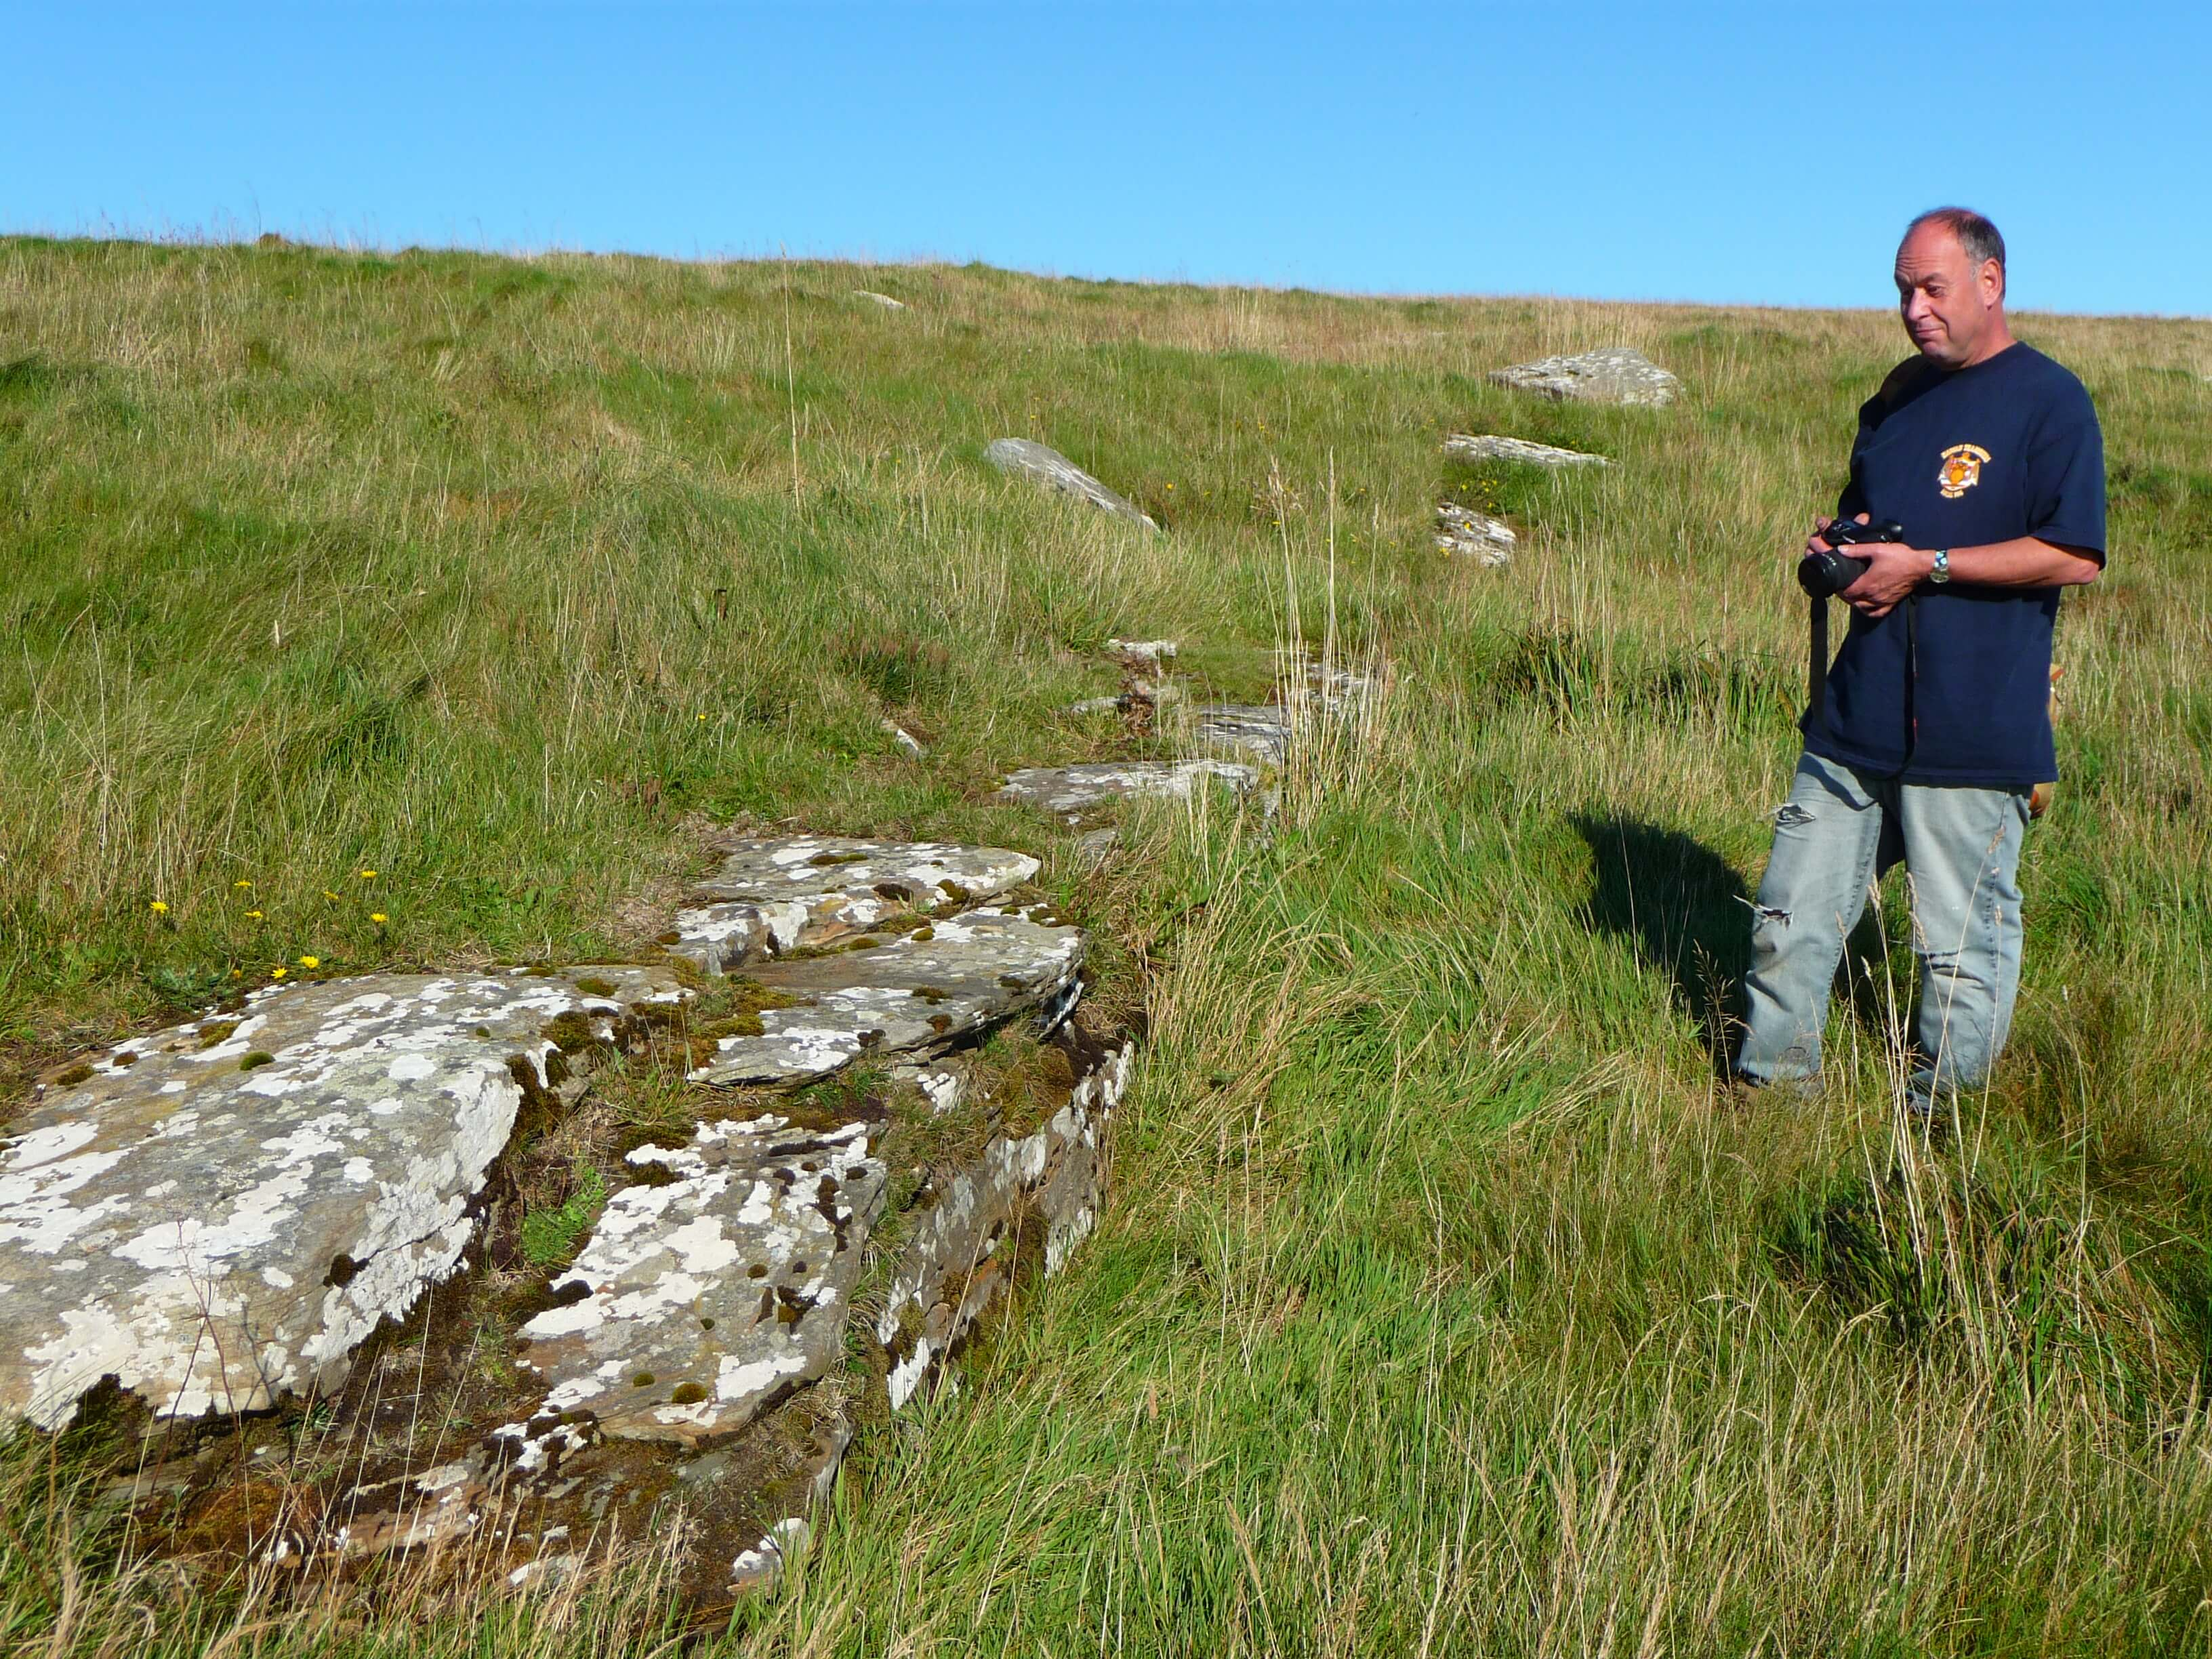 Archaeologist Colin Richards at Vestrafiold where Neolithic builders quarried stone for the standing stones at Brodgar. www.Orkneyology.com